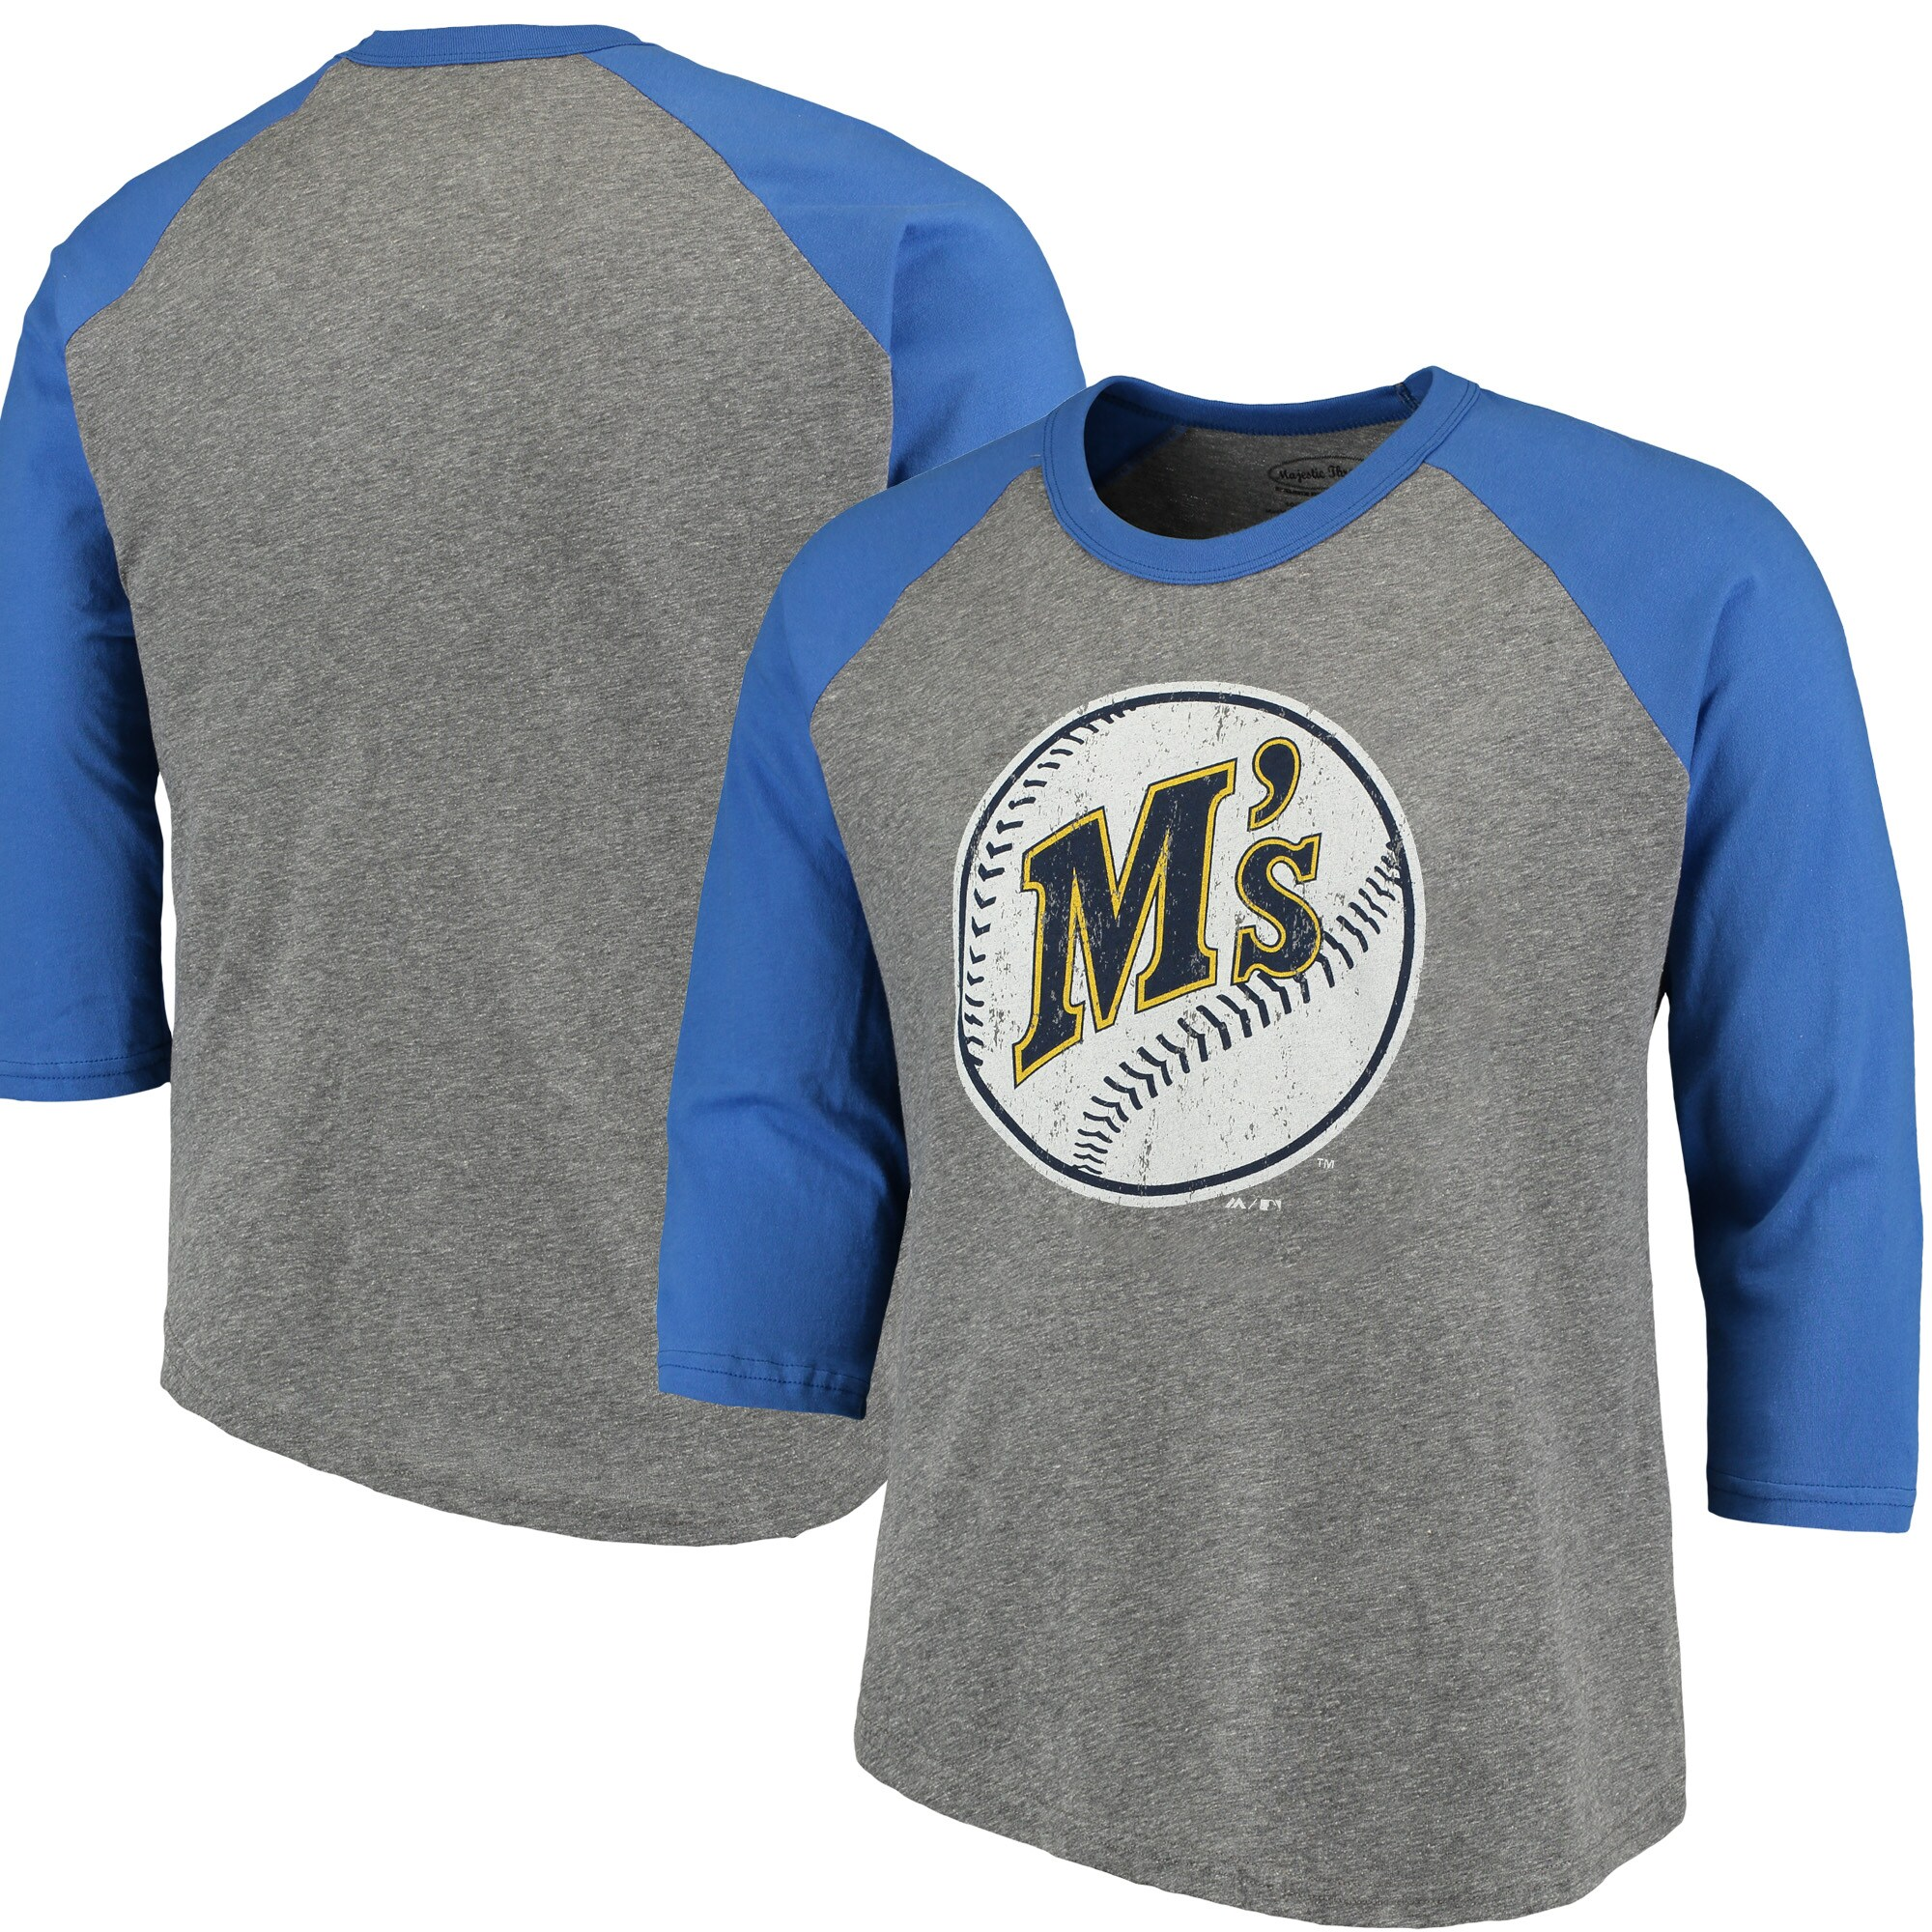 Seattle Mariners Majestic Threads Cooperstown Collection 3/4-Sleeve Raglan Tri-Blend T-Shirt - Heathered Gray/Royal